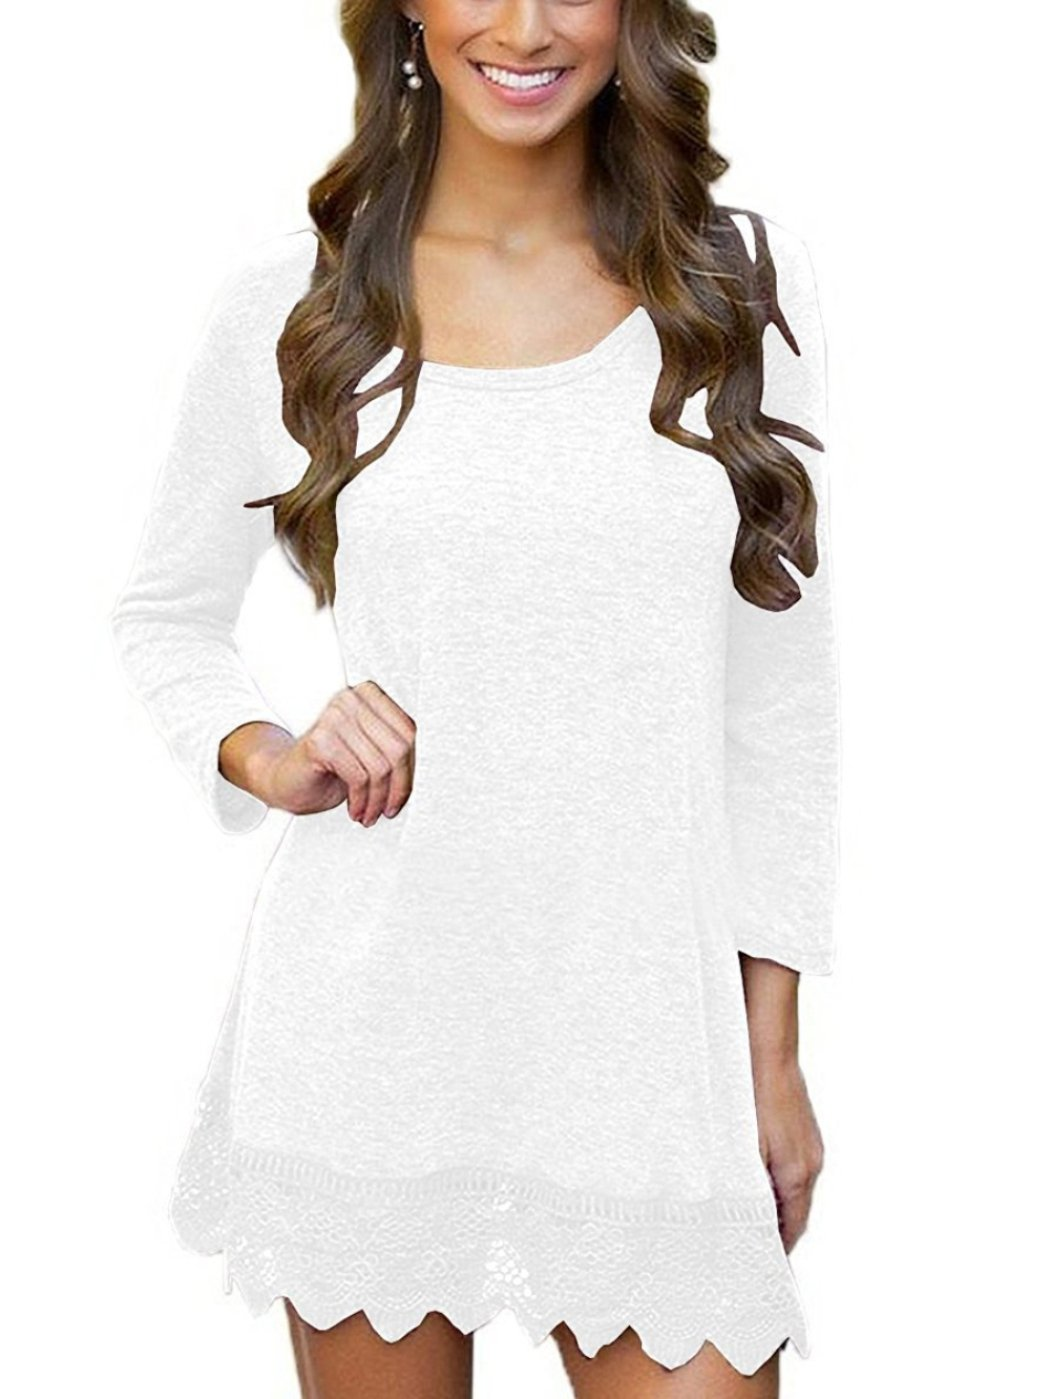 MiYang Women's Long Sleeve A-line Lace Stitching Trim Casual Dress L White